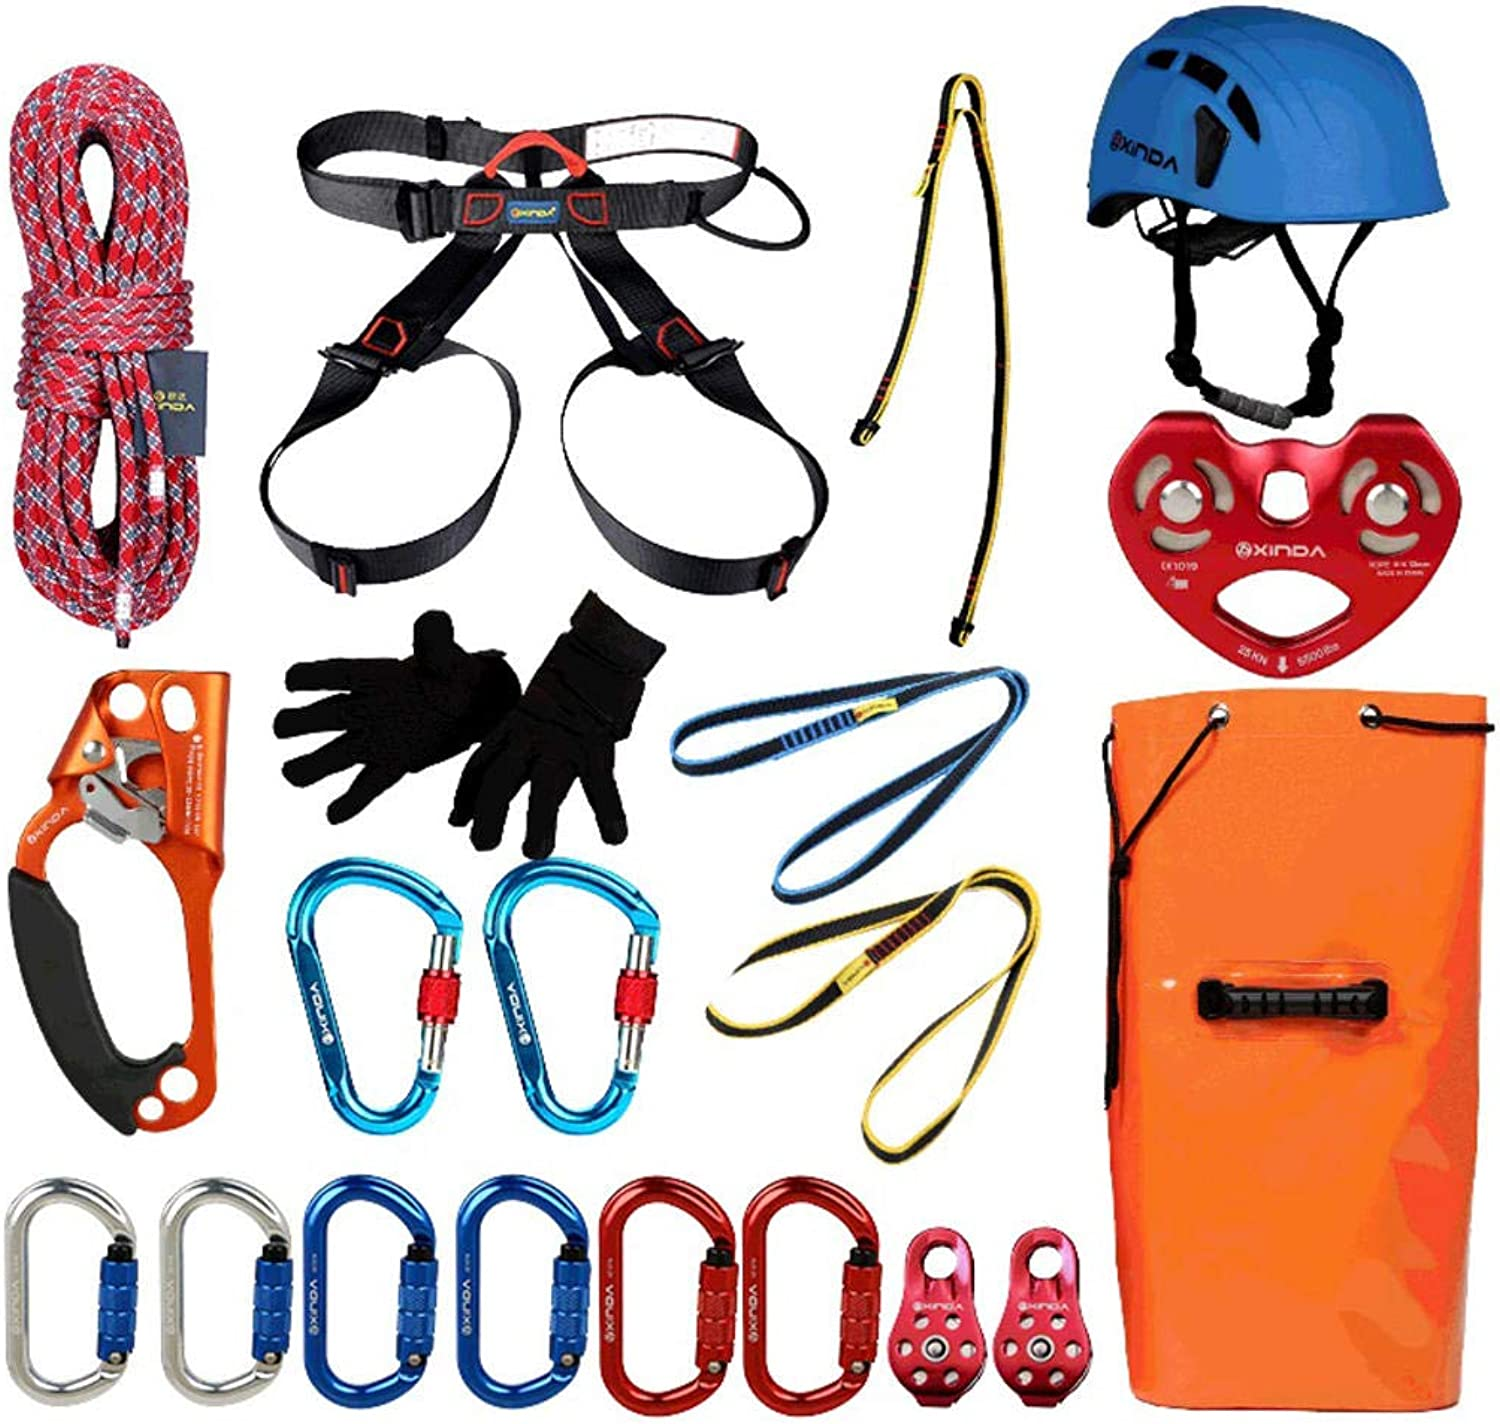 Rock Climbing Kit Outdoor Tight Rope System Strops Pulley Jungle Leap Through The Tree Adventure Equipment  21 Pieces